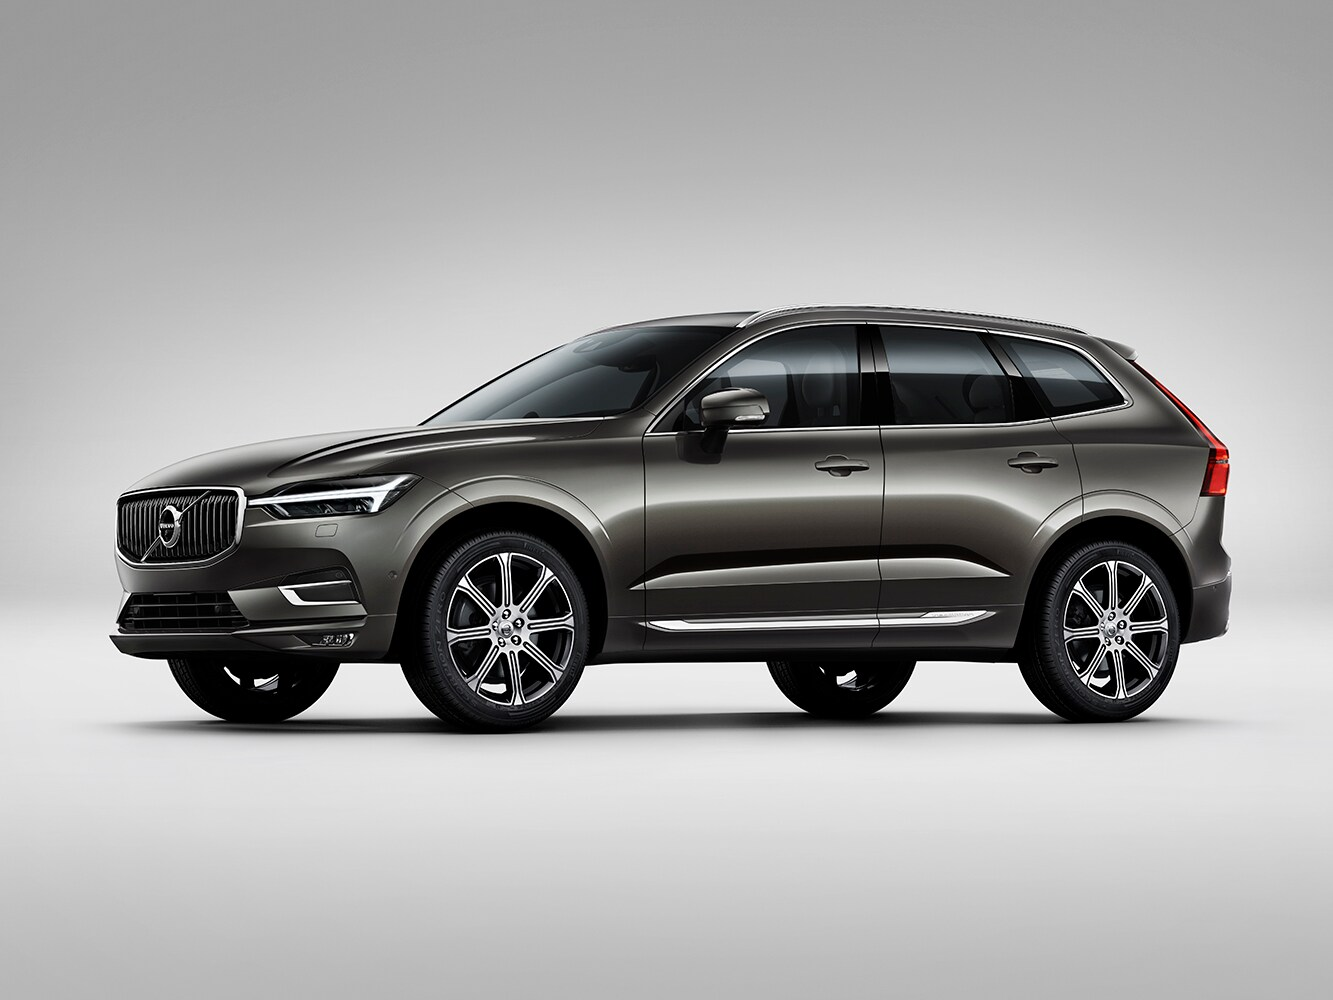 The Volvo XC60 Inscription trim